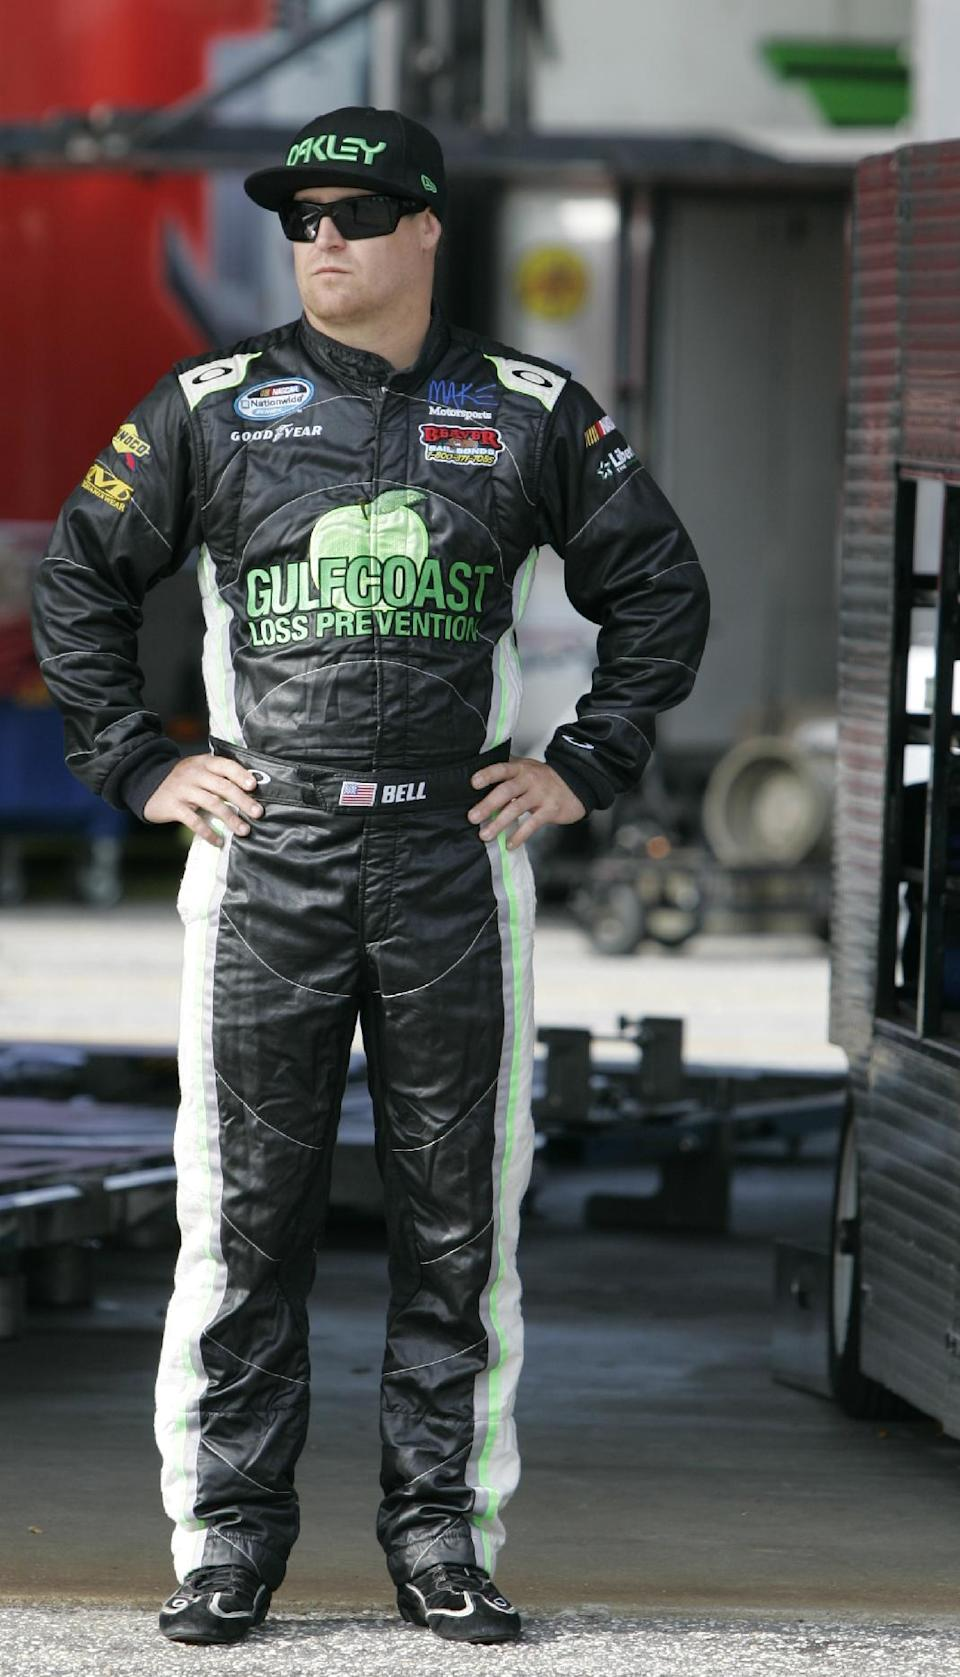 NASCAR driver T.J. Bell stands in the garage area at Darlington Raceway during practice for the Nationwide Series auto race, Friday, May 11, 2012 in Darlington, S.C. (AP Photo/Mary Ann Chastain)